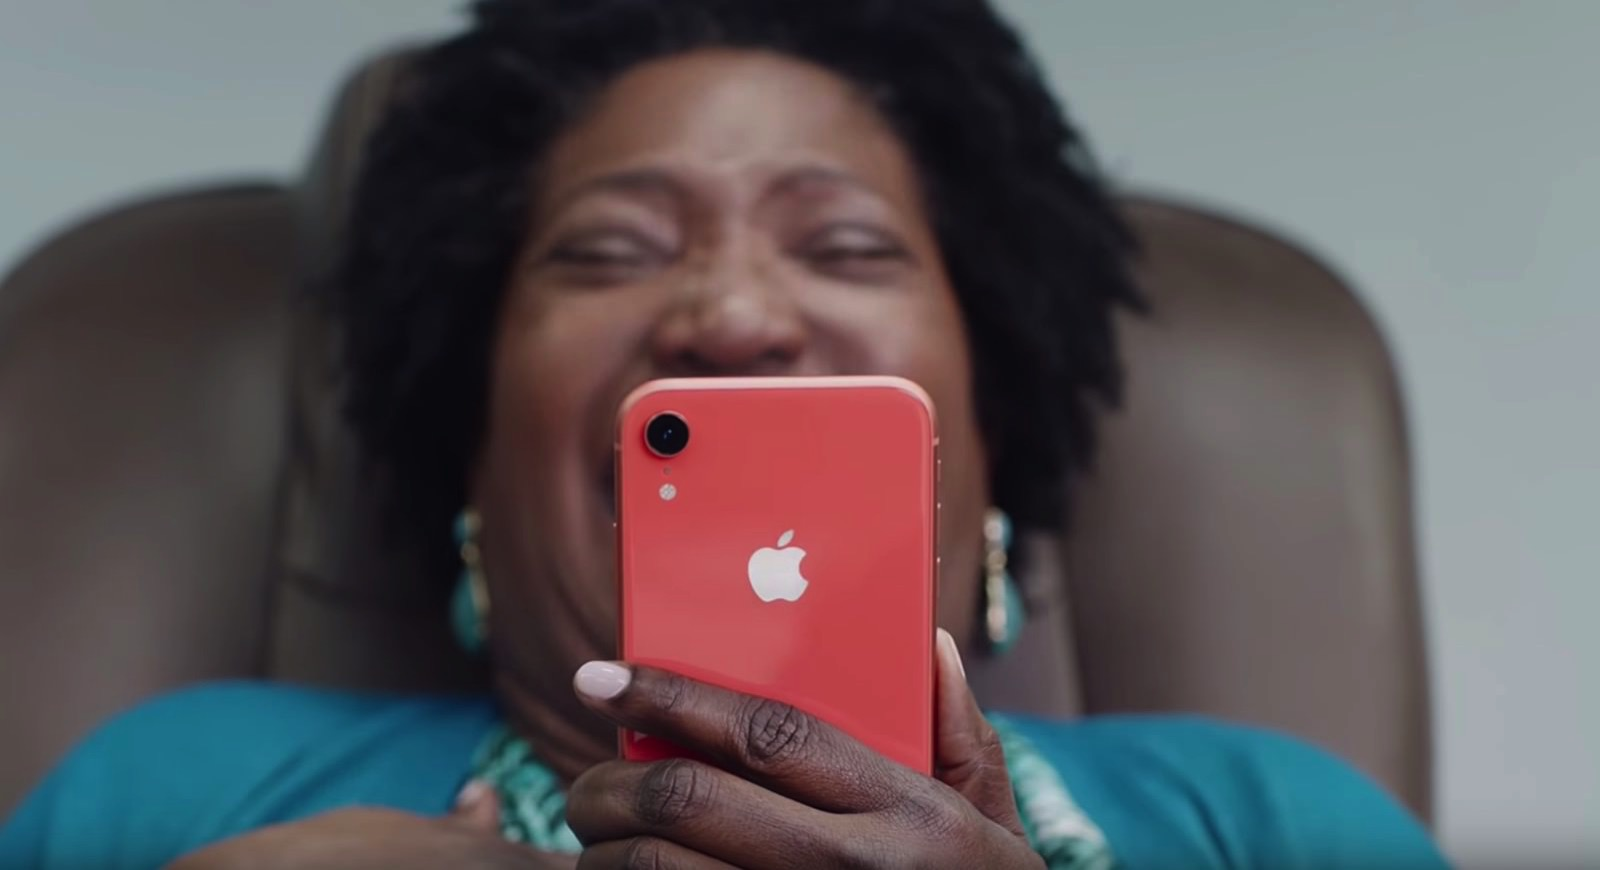 Laughing Lady iPhone XR